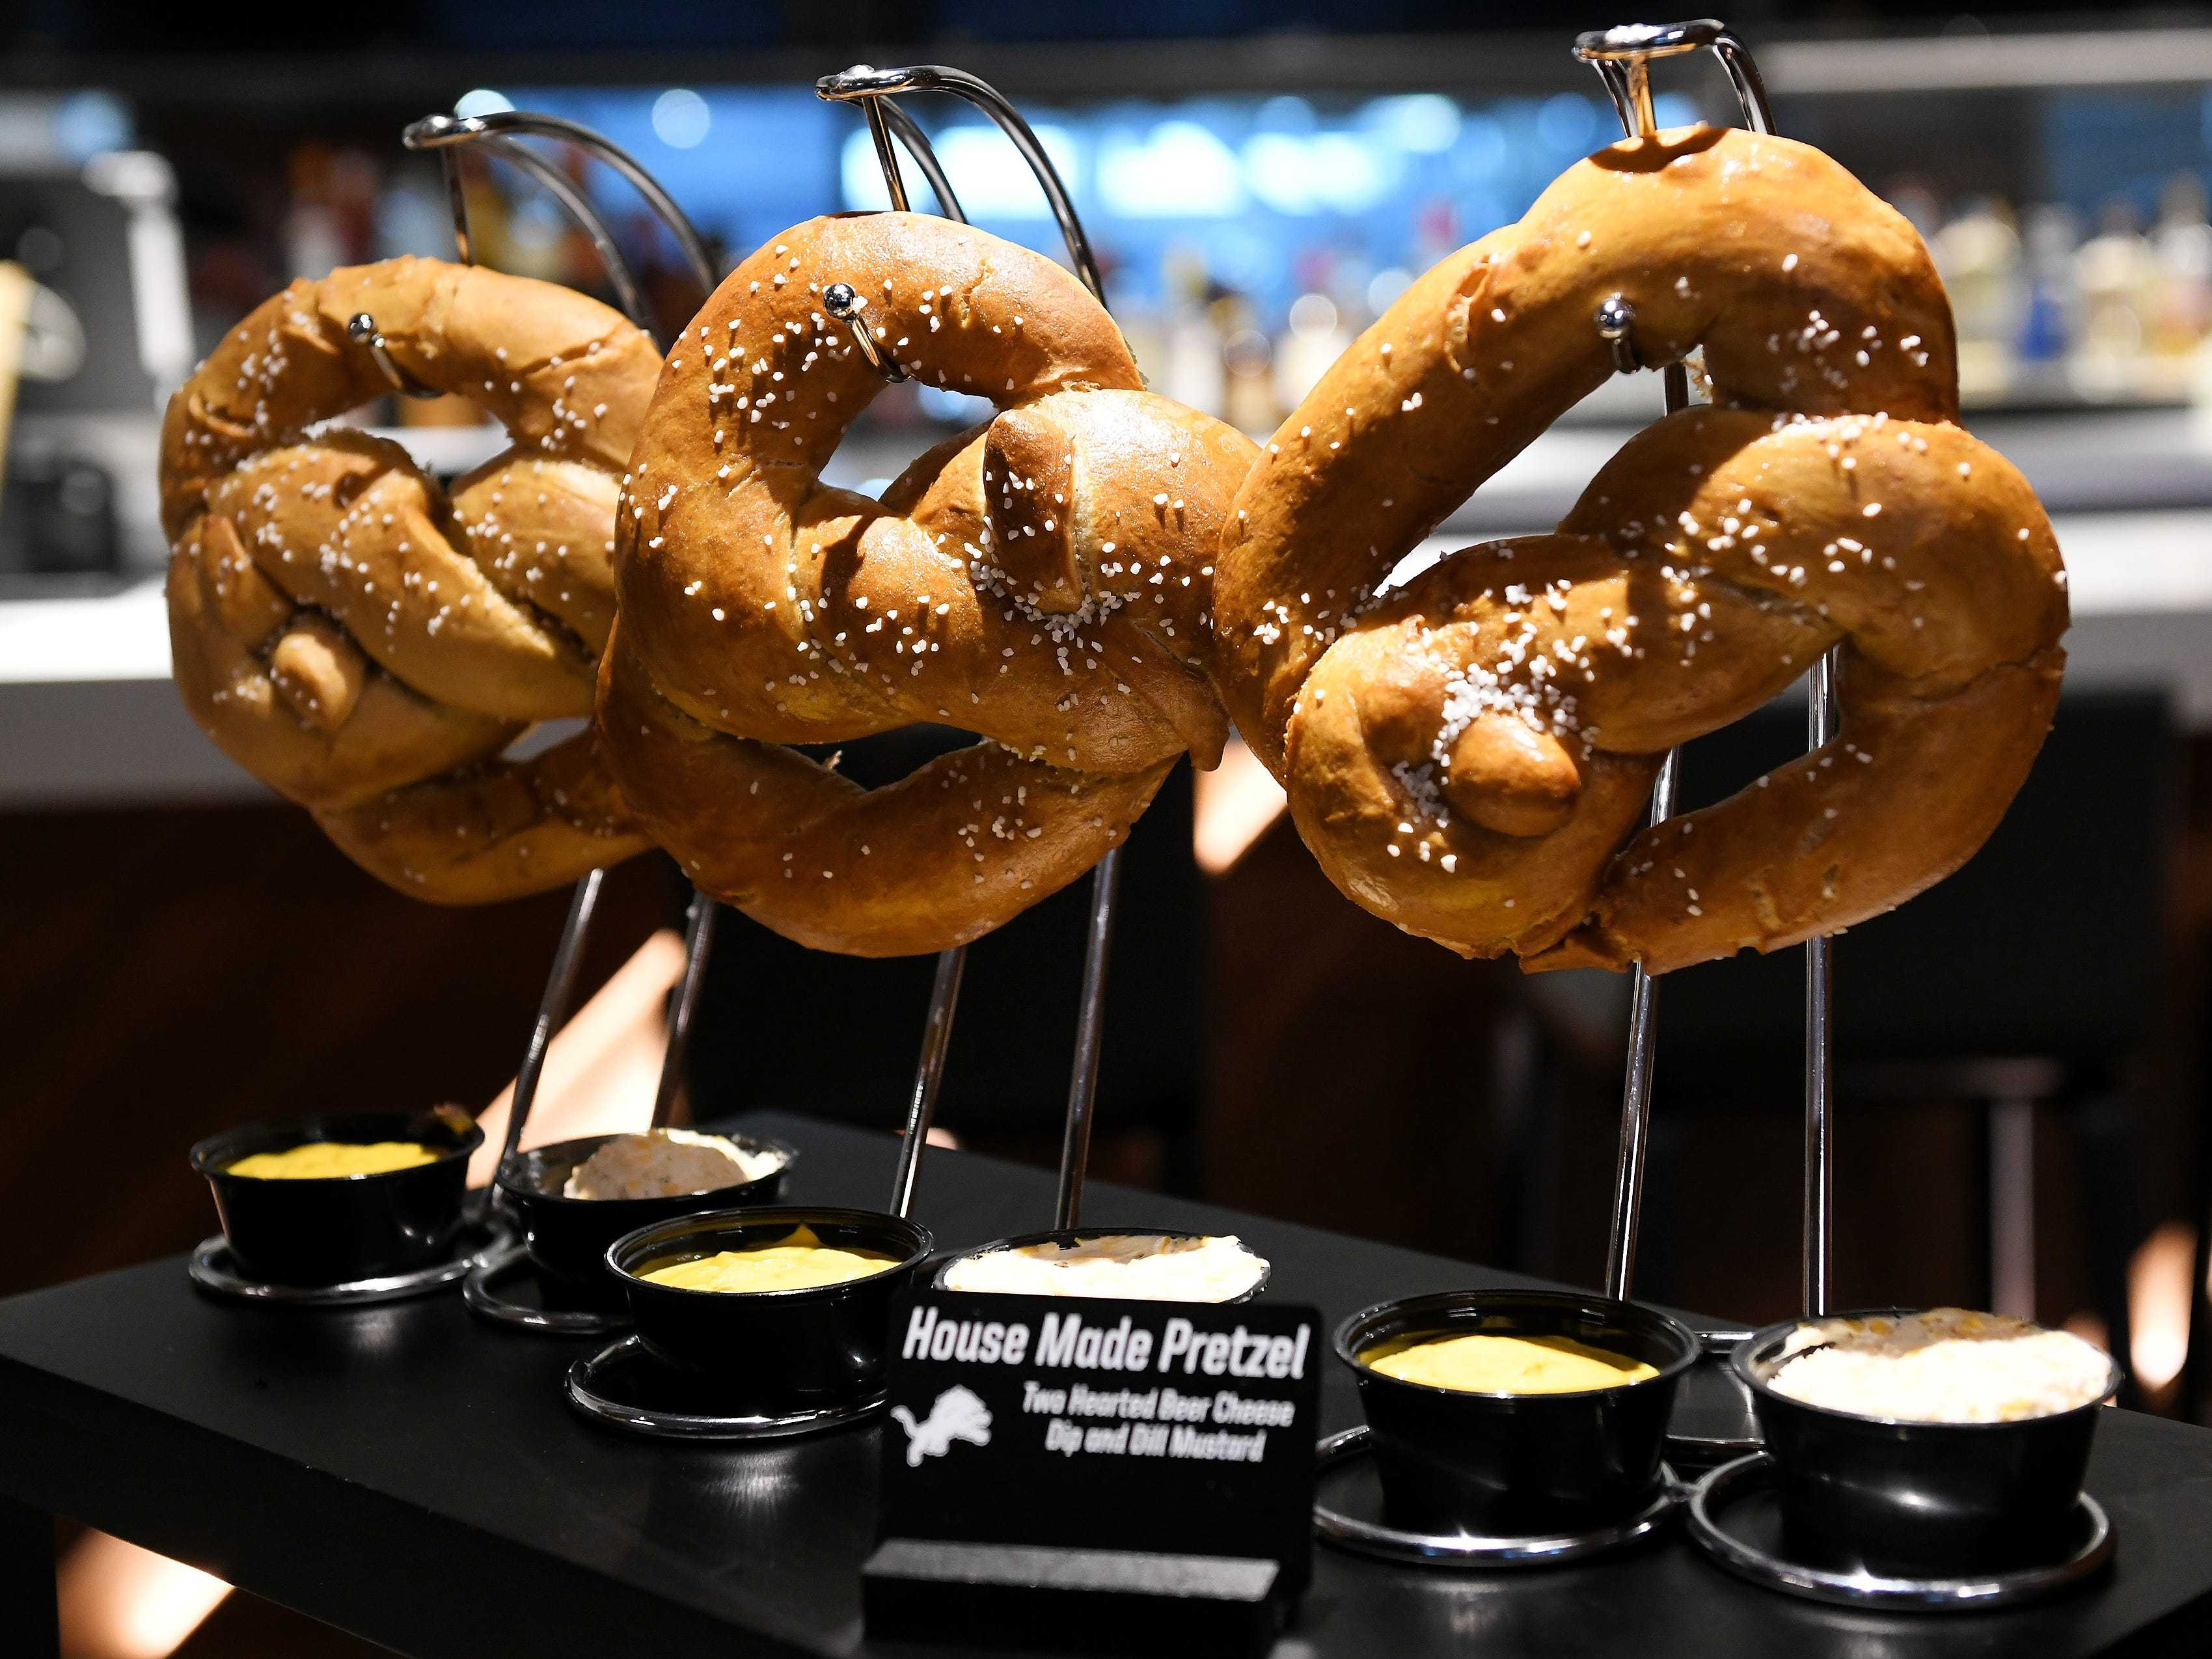 House made pretzels with Two Hearted beer cheese and dill mustard.